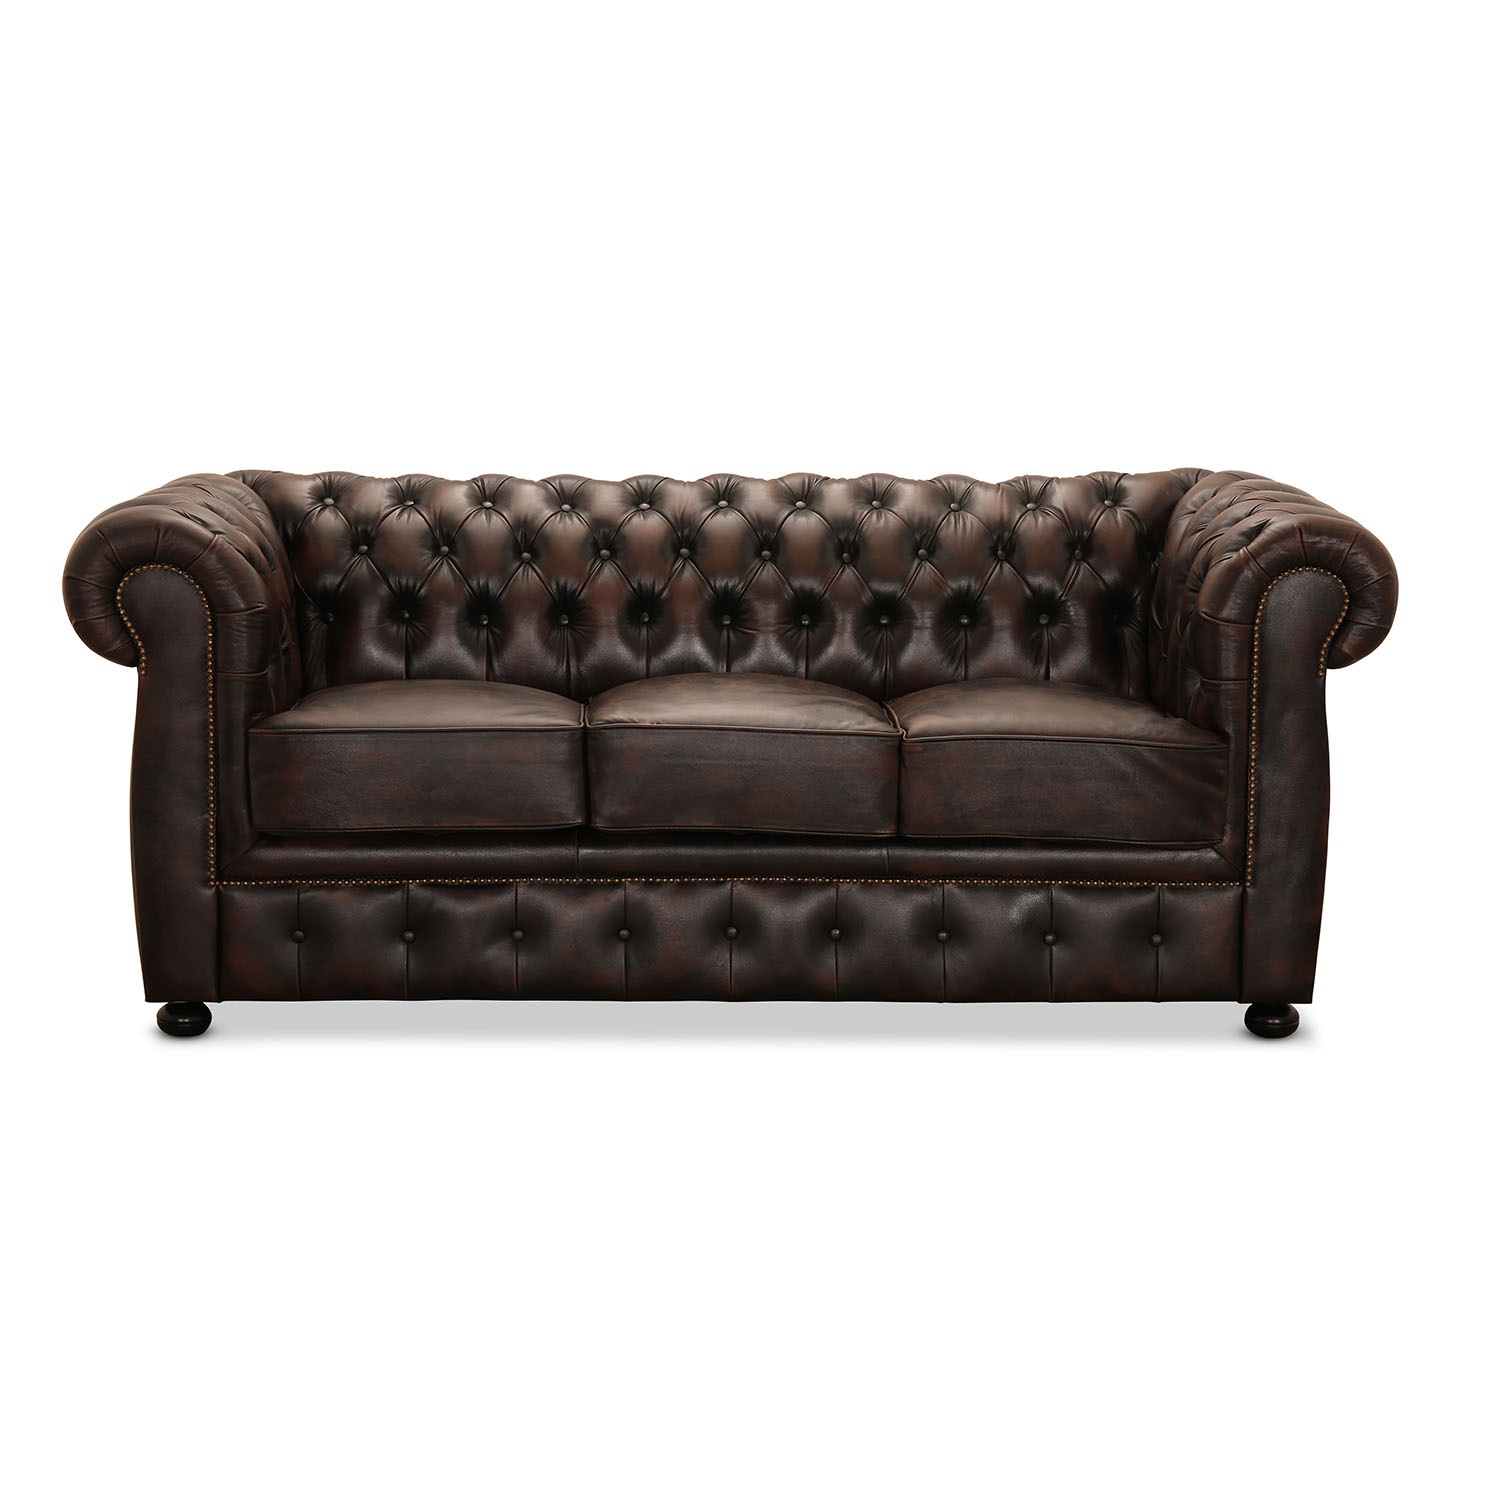 Liverpool 3 personer chesterfield sofa - brun